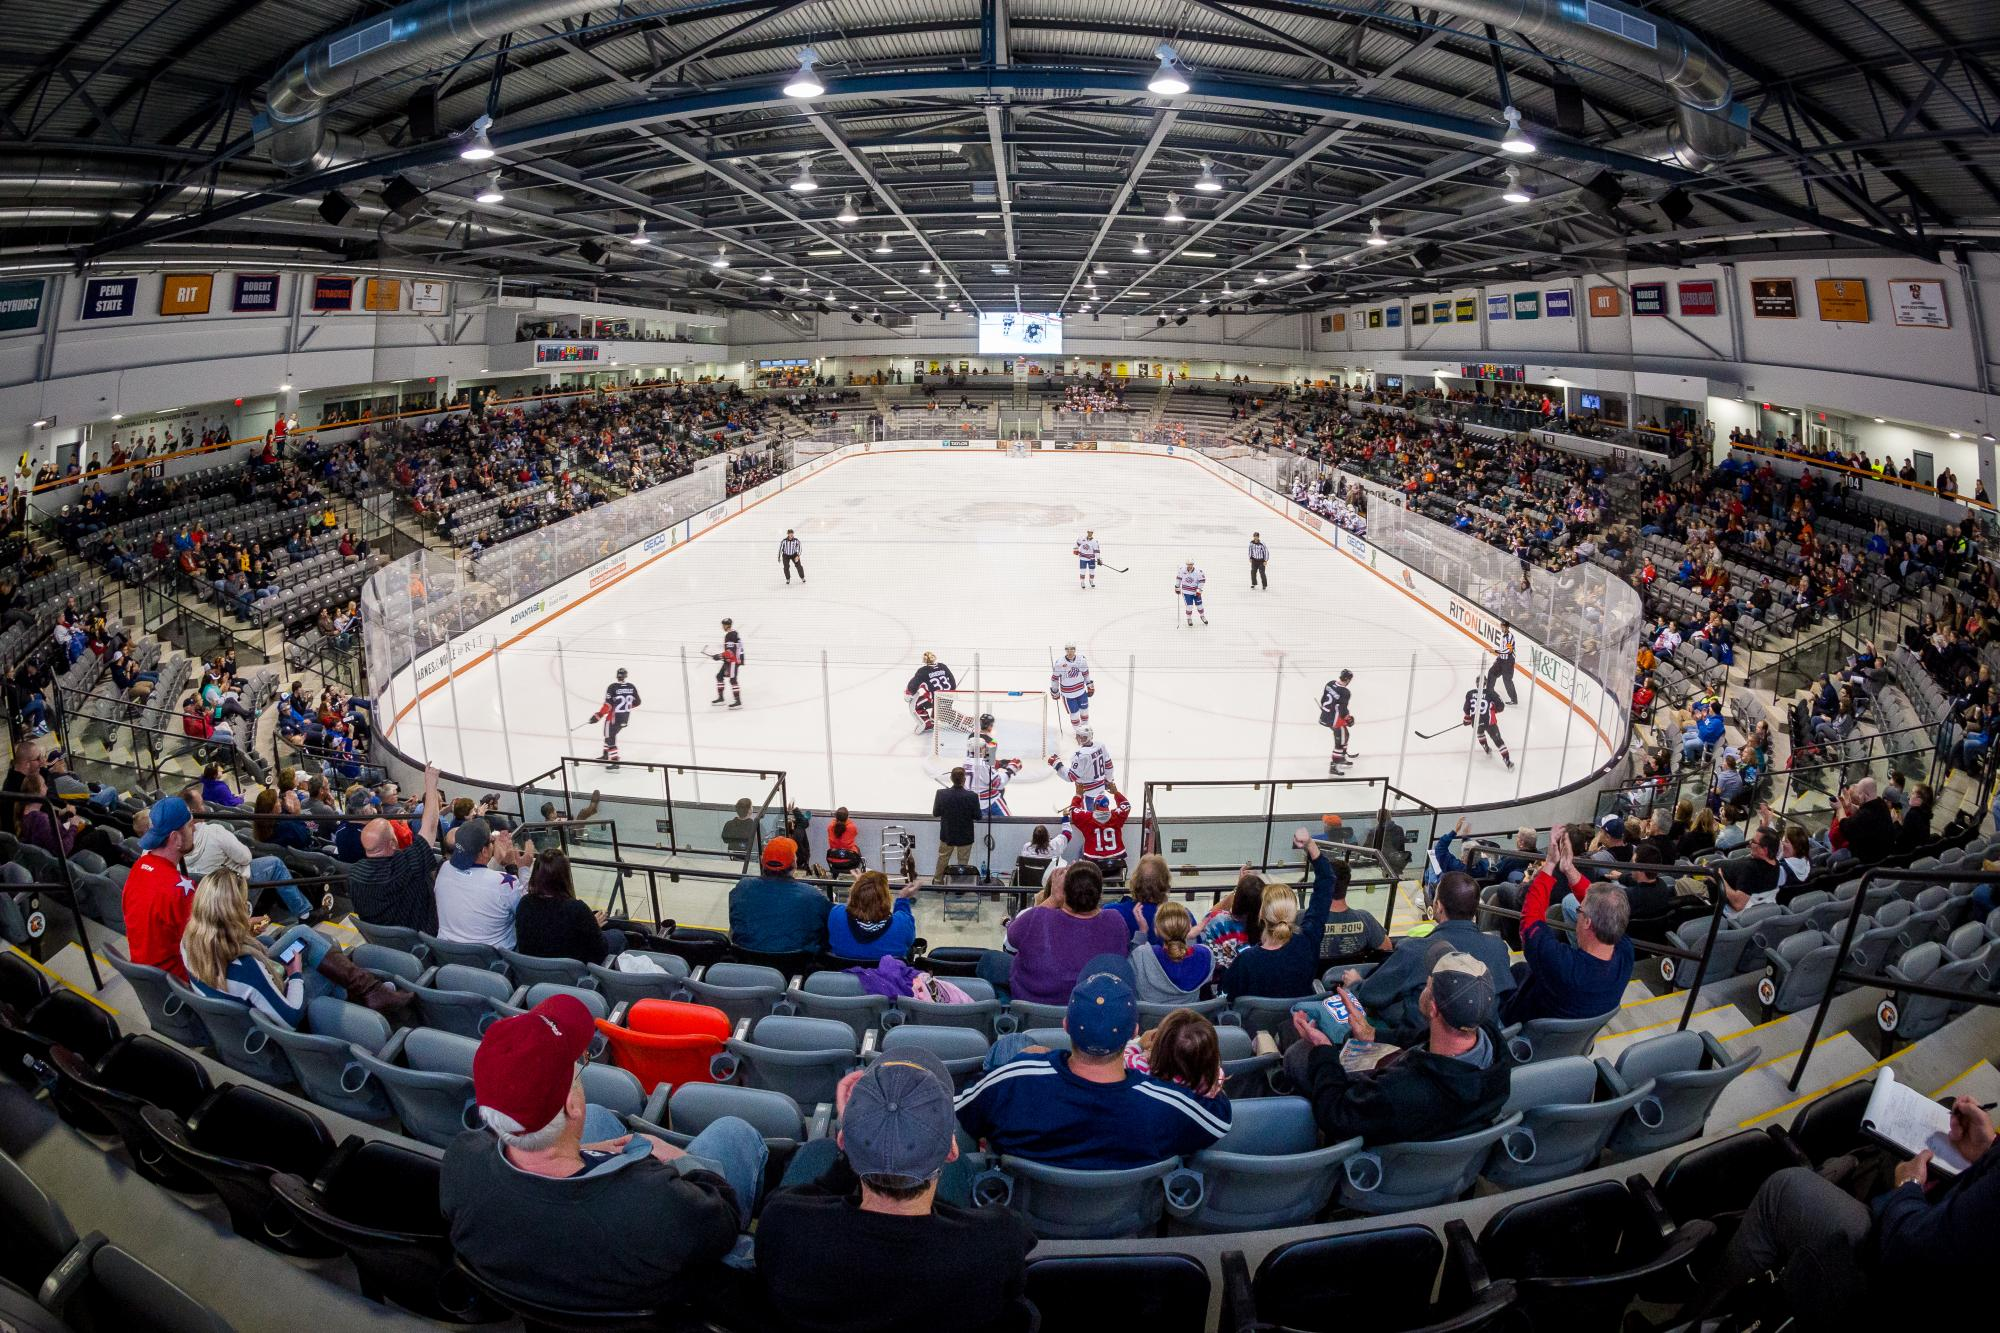 An overview of the Gene Polisseni Center during the Rochester Americans game on Oct. 1, 2015. Photograph by Rob Rauchwerger.